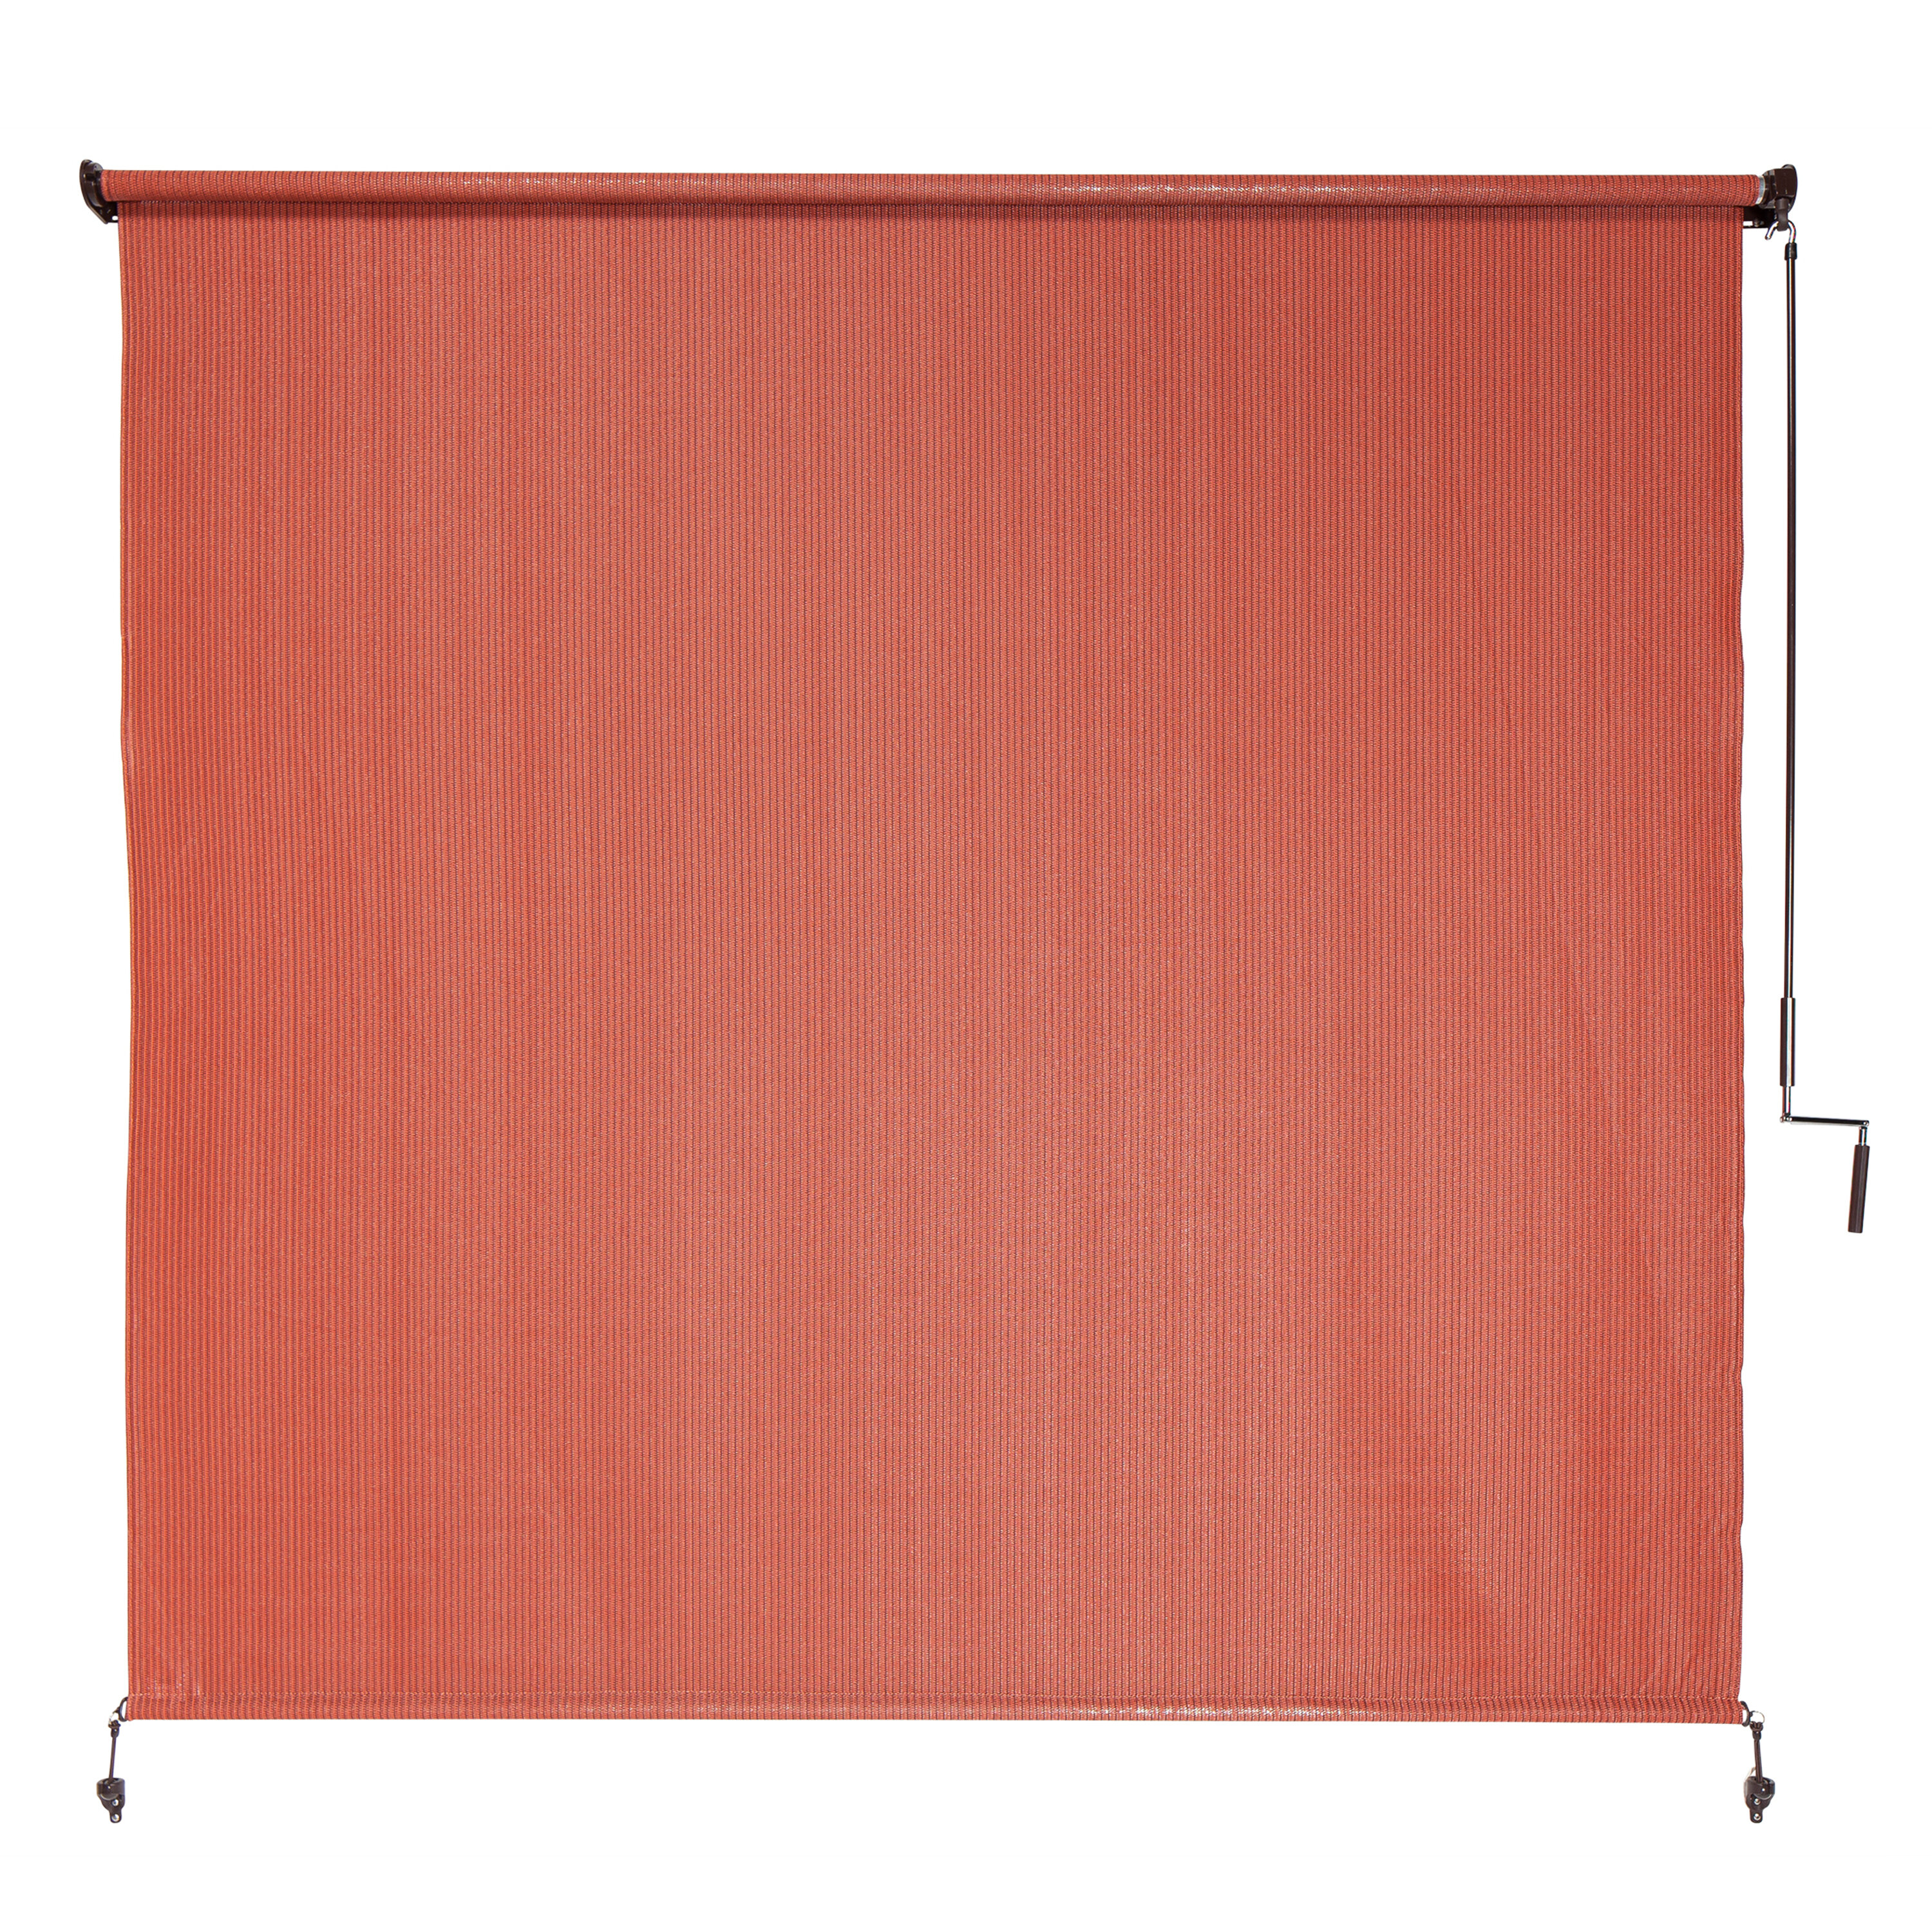 Coolaroo Terracotta Outdoor Roller Shade & Reviews | Wayfair